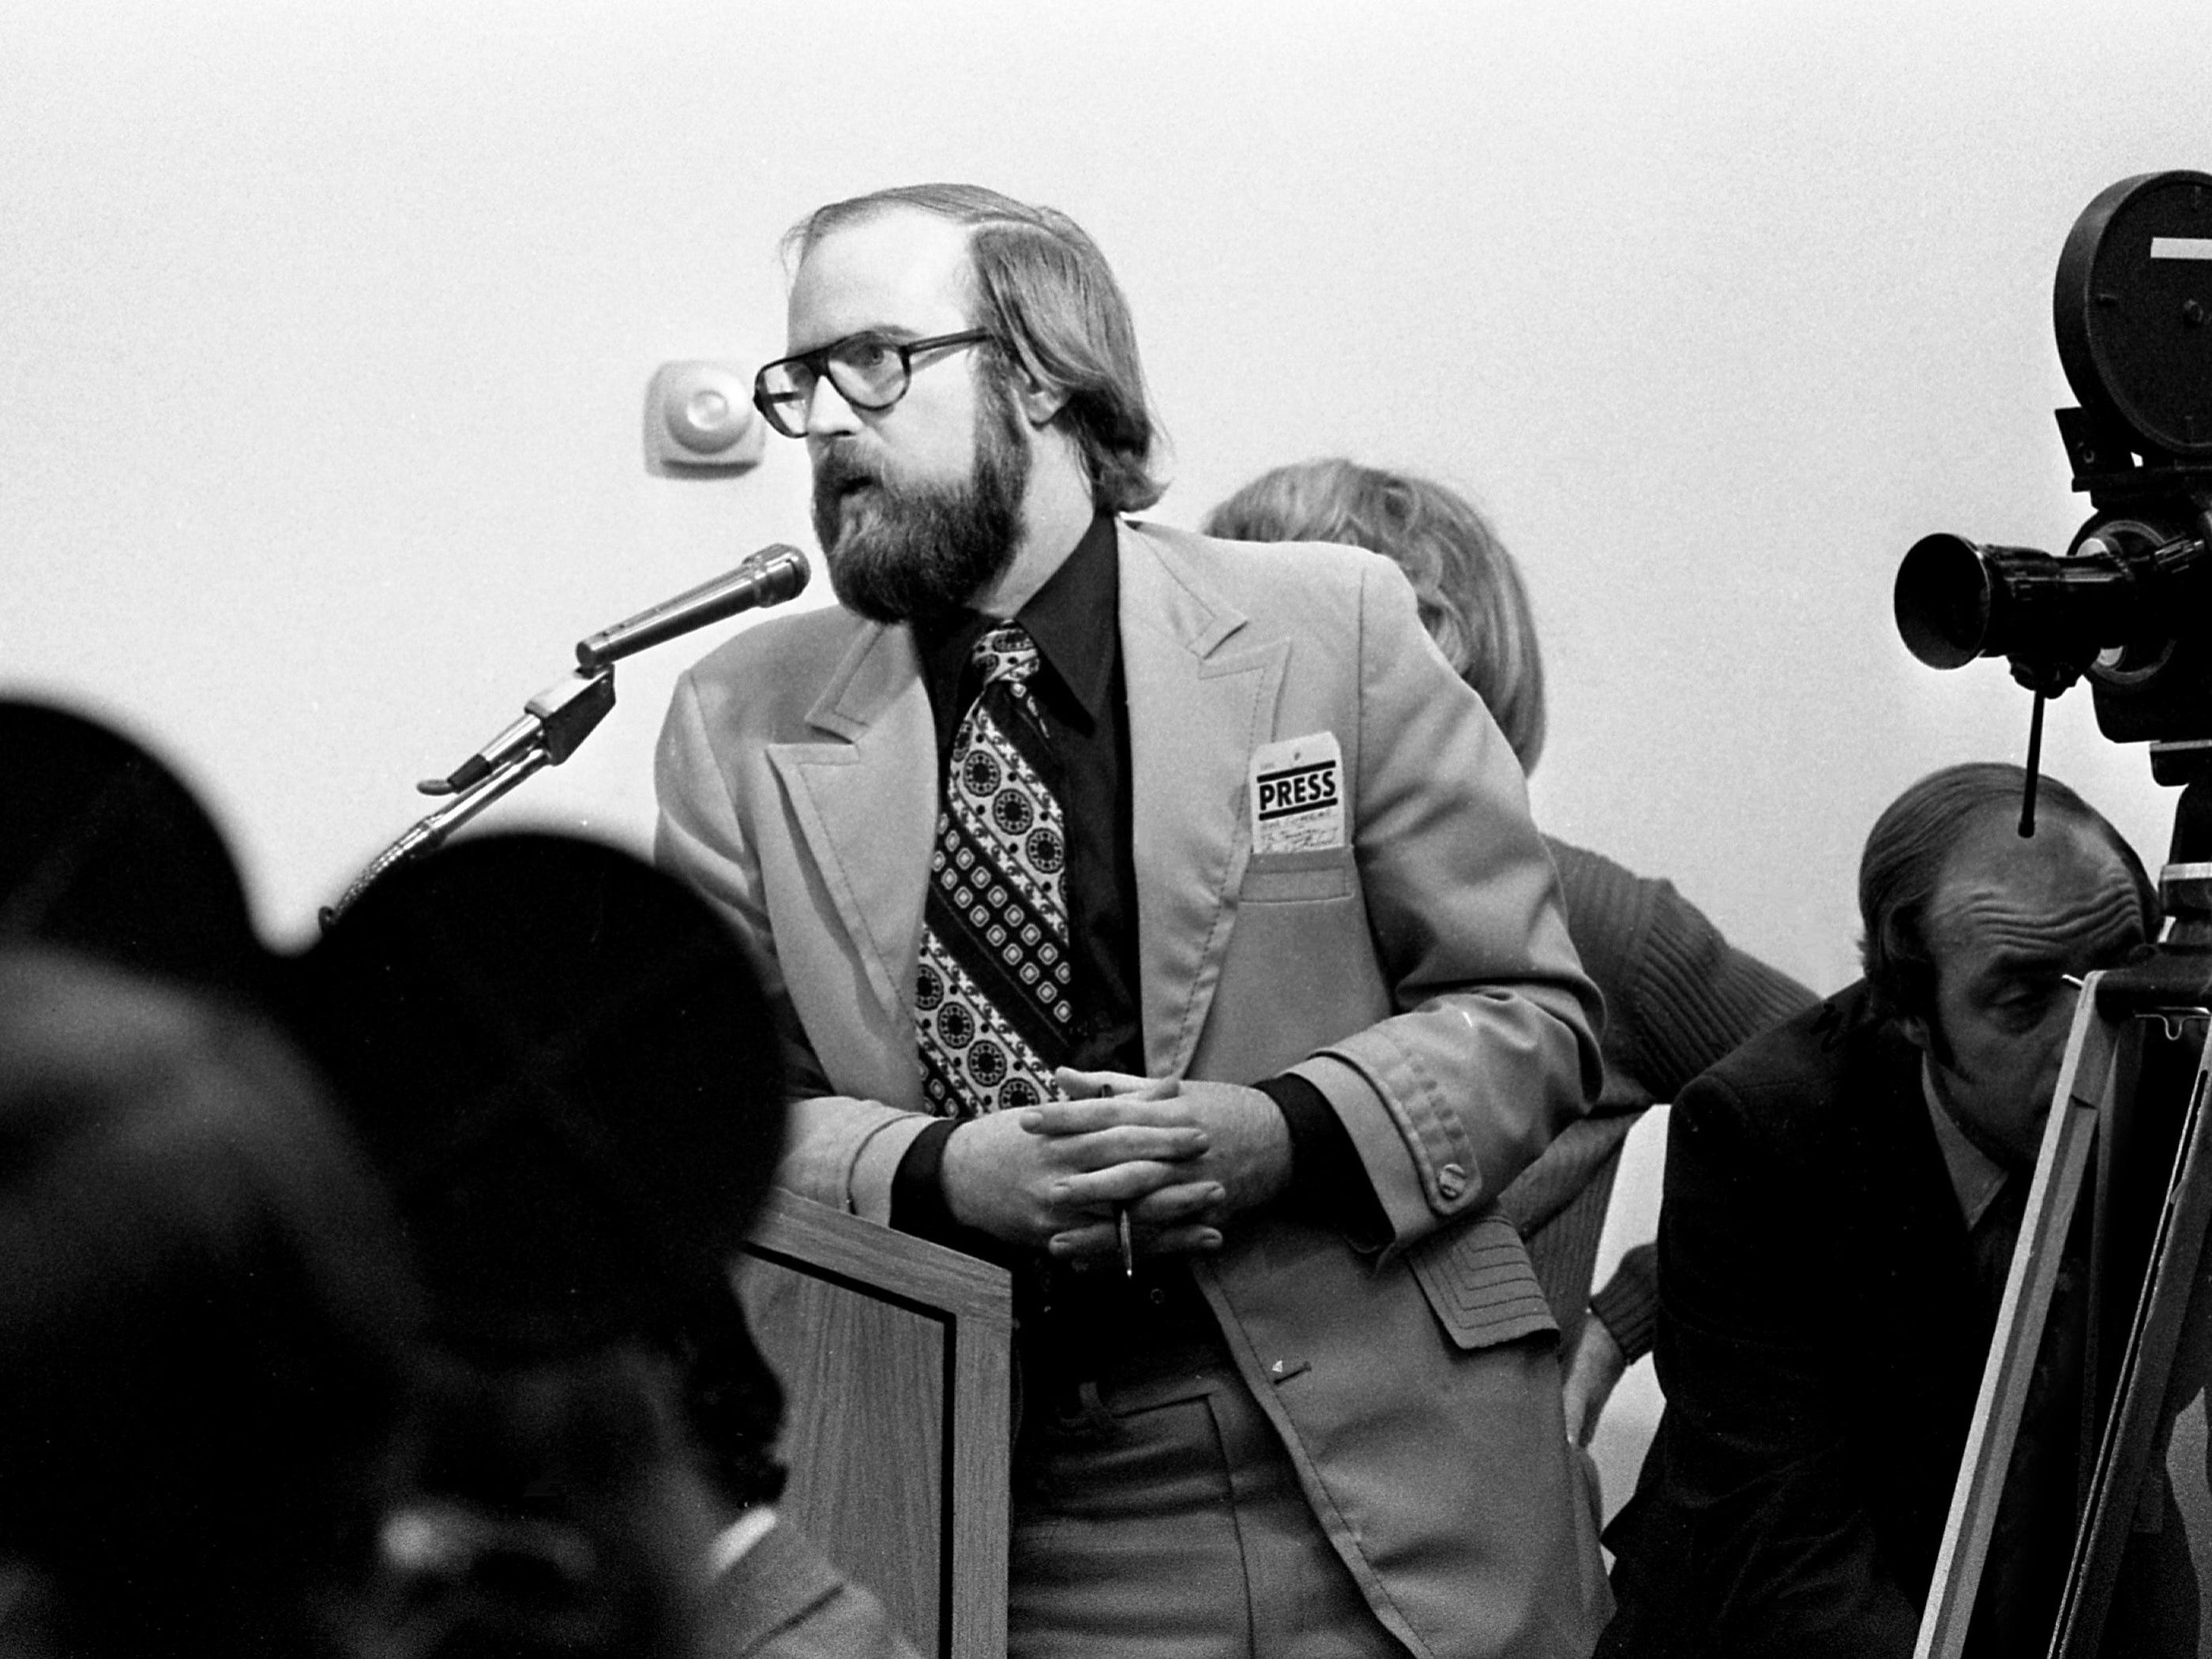 Tennessean reporter Frank Sutherland asks a question of Alabama Gov. George Wallace during a news conference at the Tennessee state Capitol on Jan. 26, 1976.